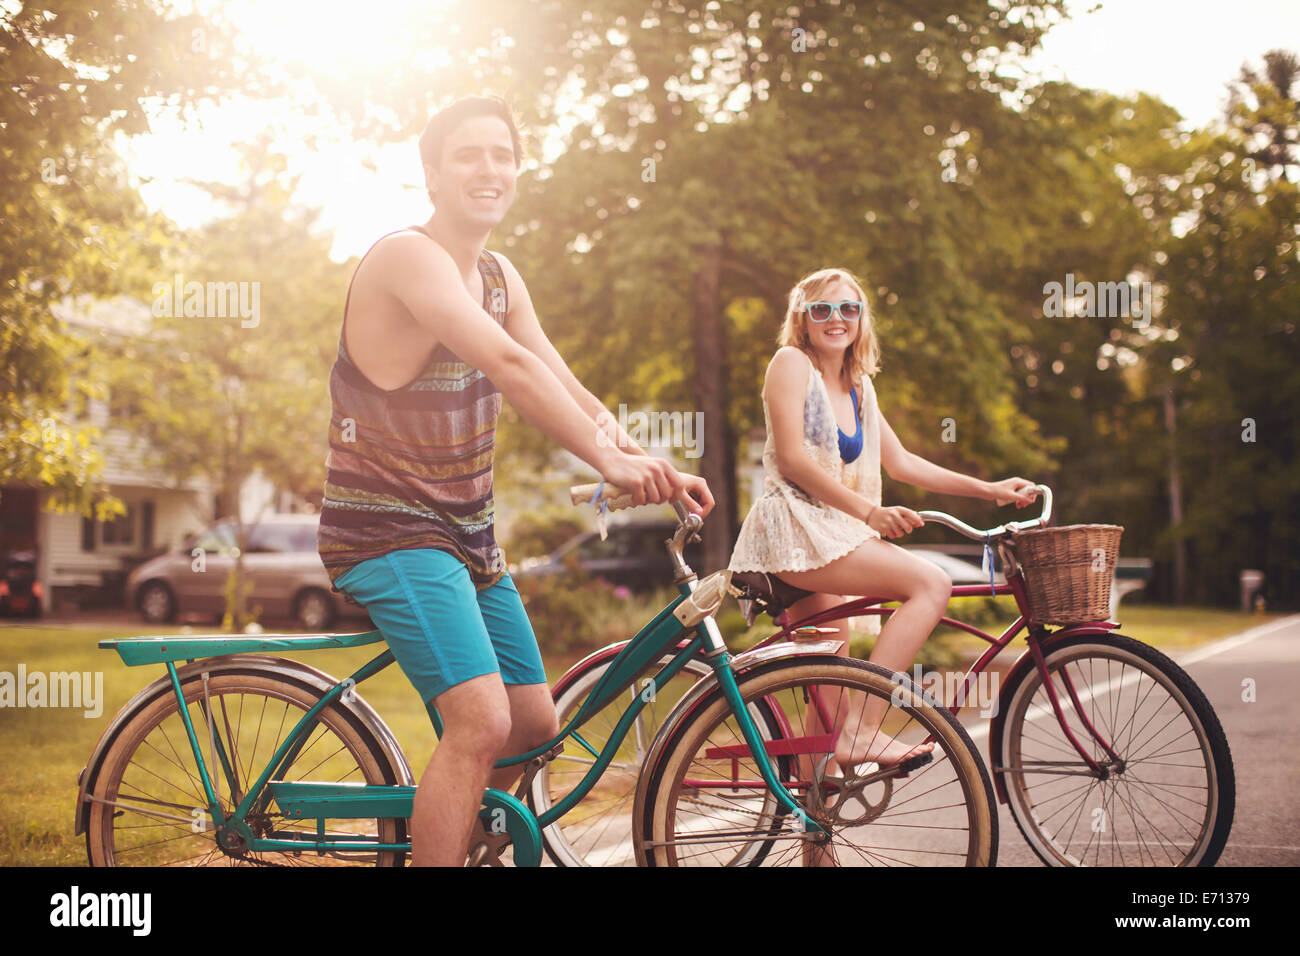 Young couple on bikes - Stock Image